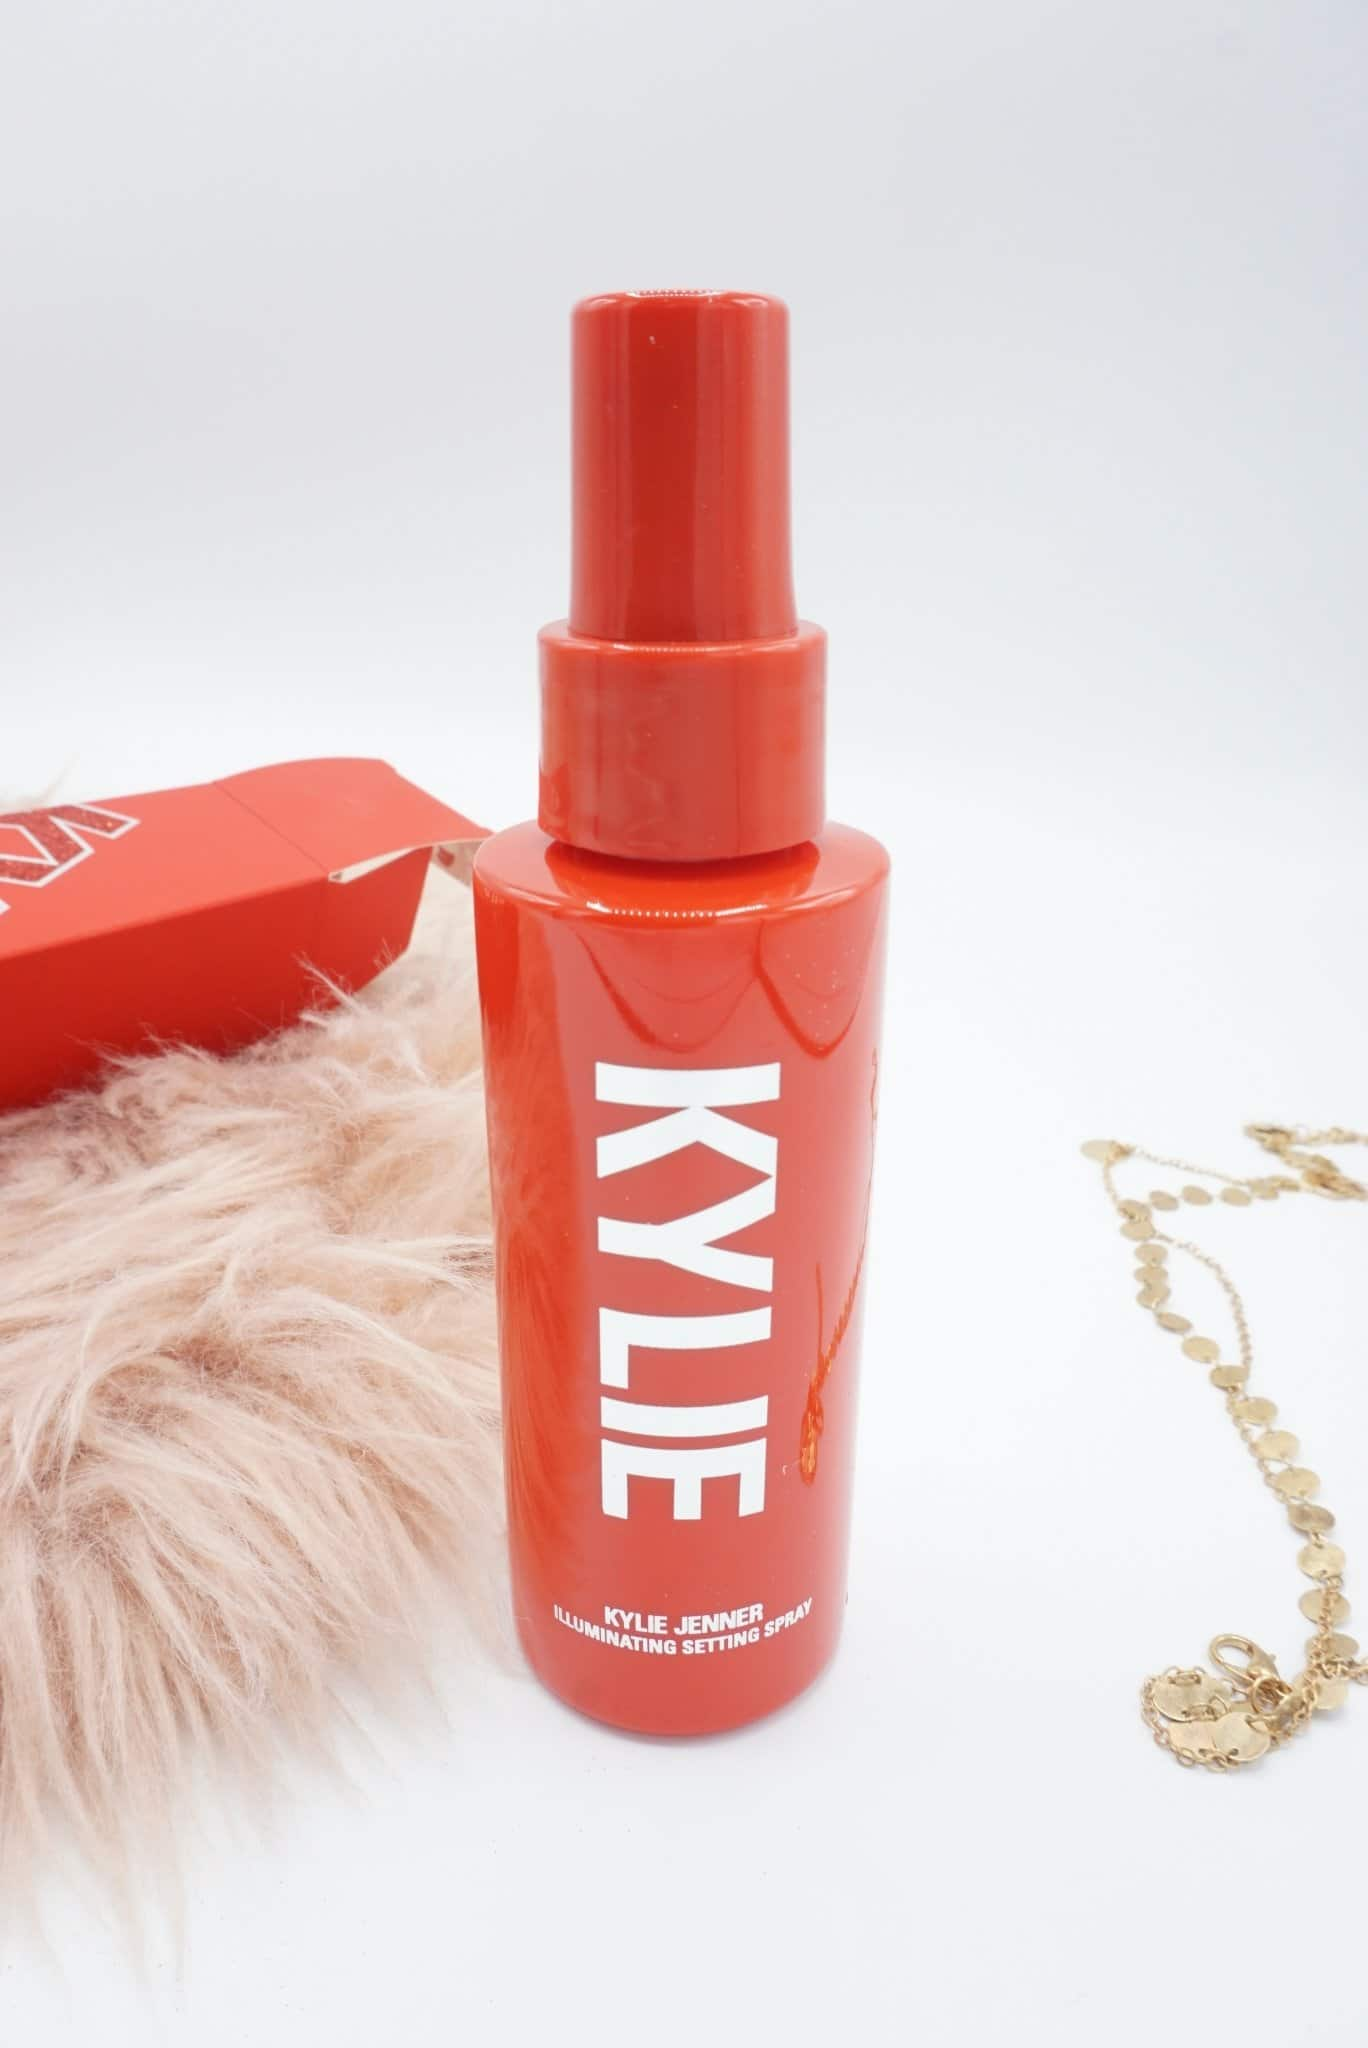 Christmassy Kylie Cosmetics Holiday 2019 Collection Review ⋆ Beautymone